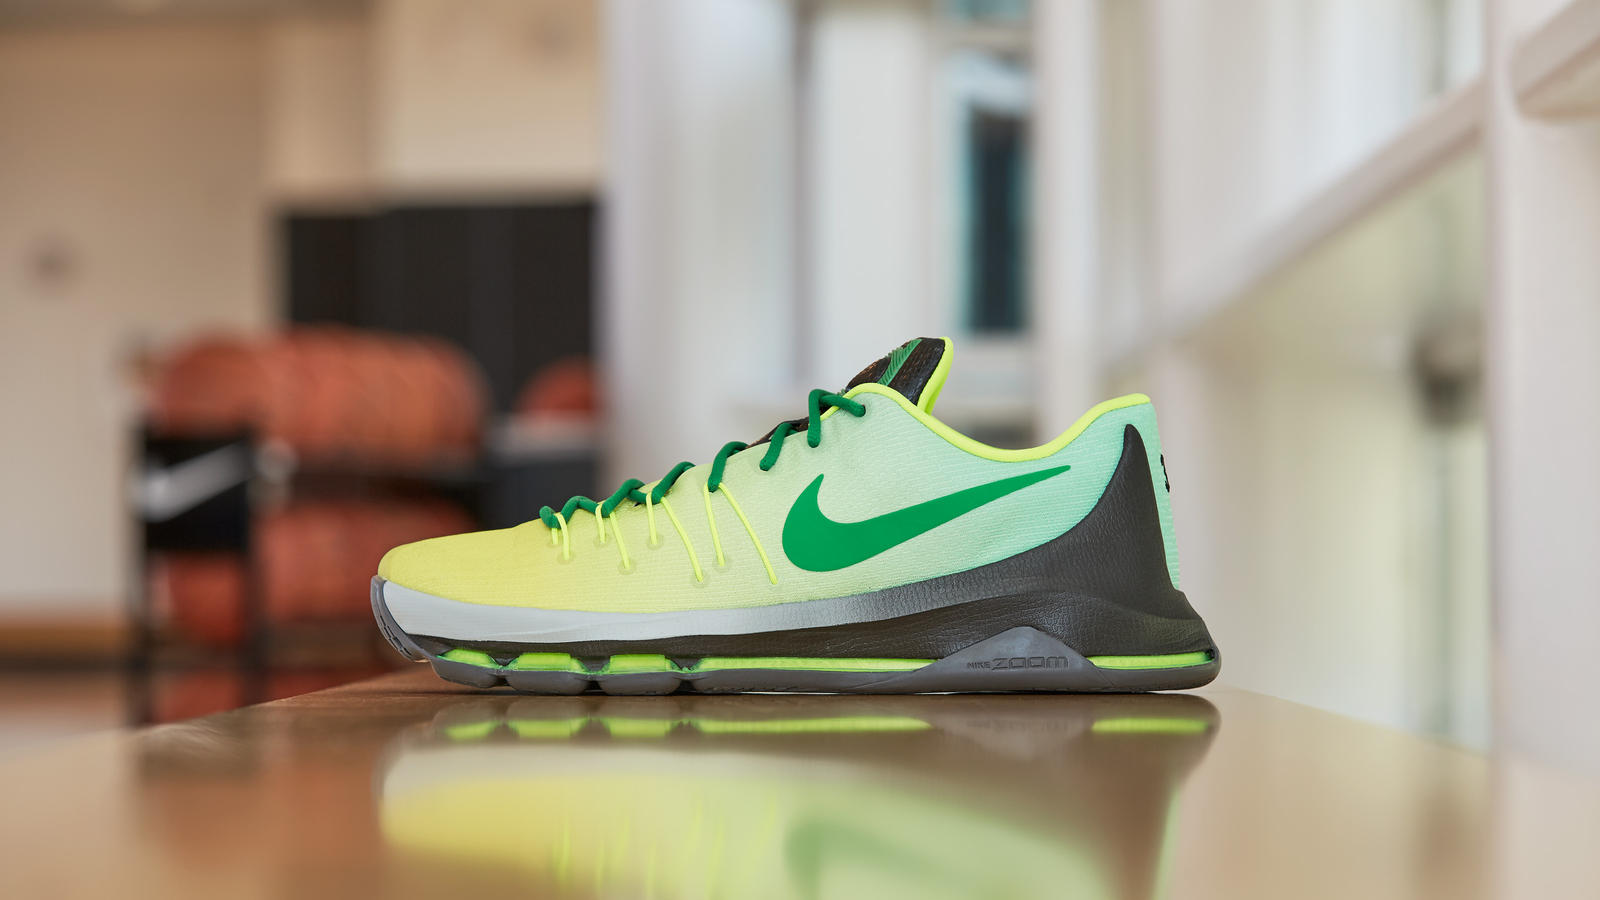 Nike creates KD8 NIKEiD for Breanna Stewart featuring Seattle Storm colors